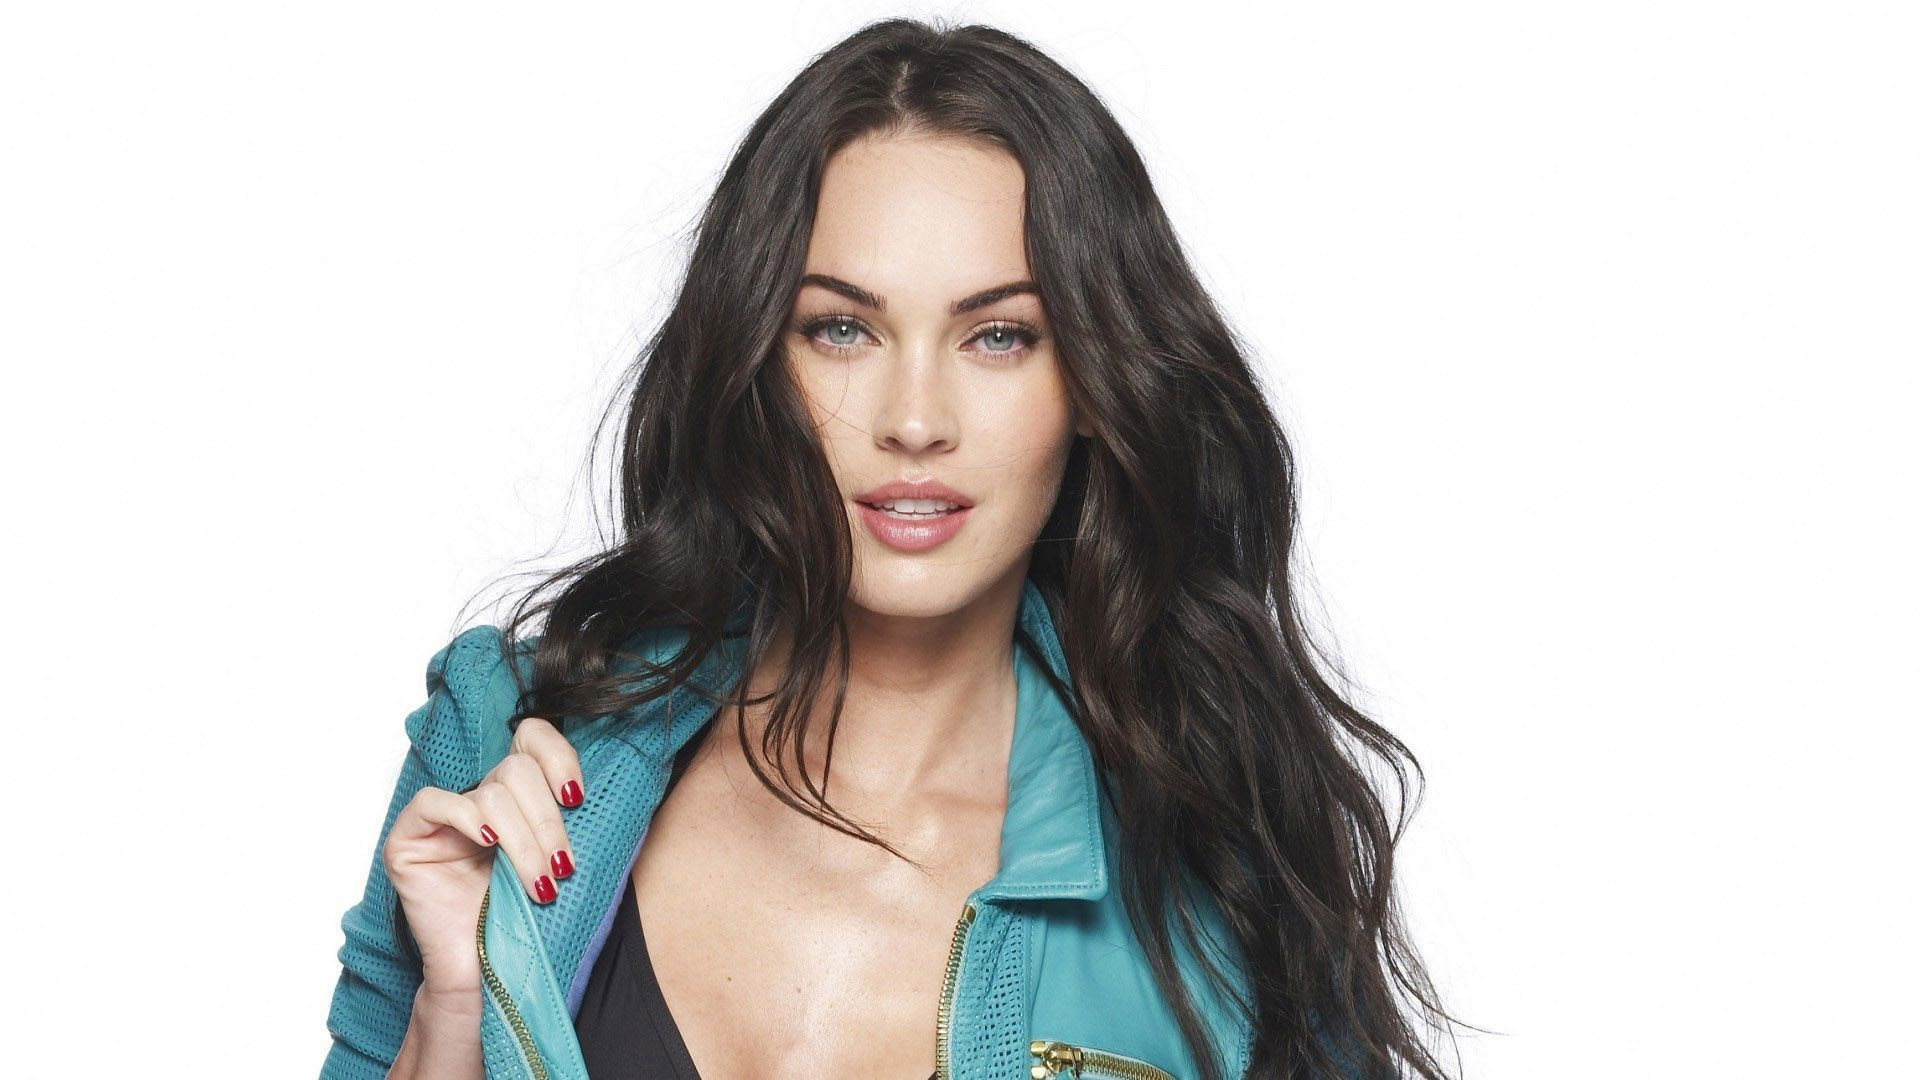 1920x1080-px-desktop-for-megan-fox-by-Farley-Brook-for-TrunkWeed-com-wallpaper-wp380872